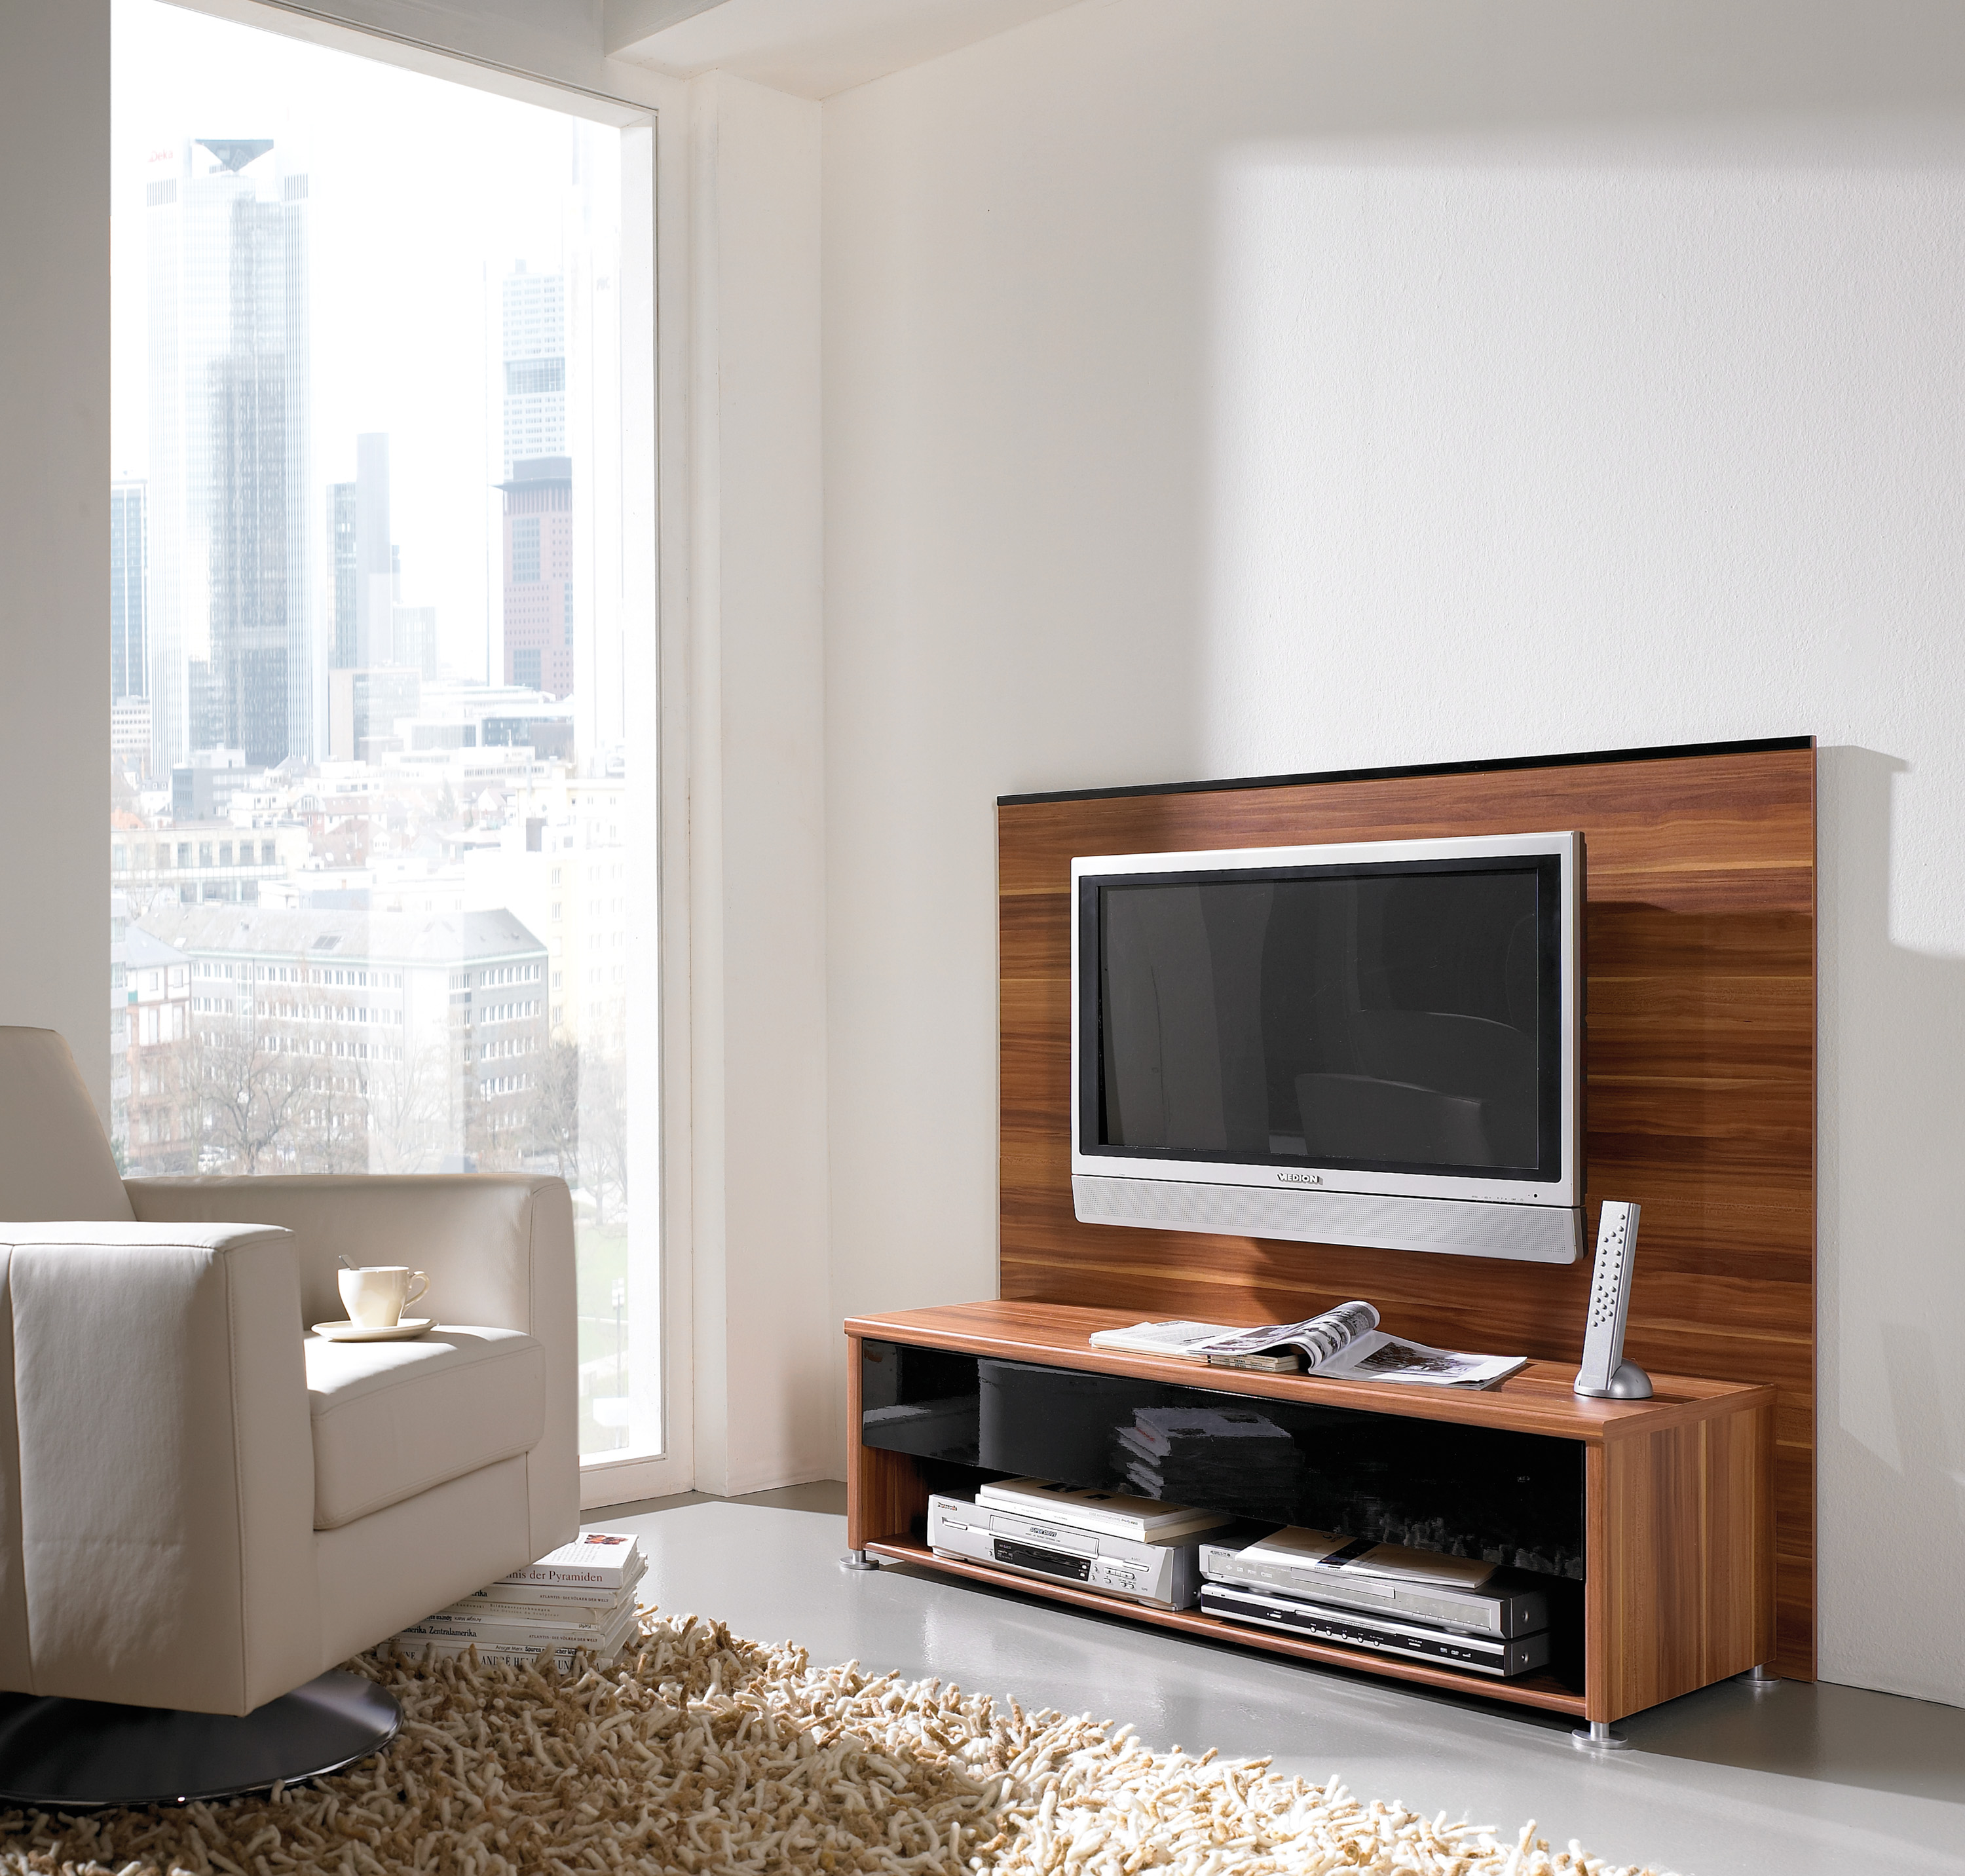 tv stand 0394 87 - Television Reviews, The Five Best Places to Buy a New Television Today